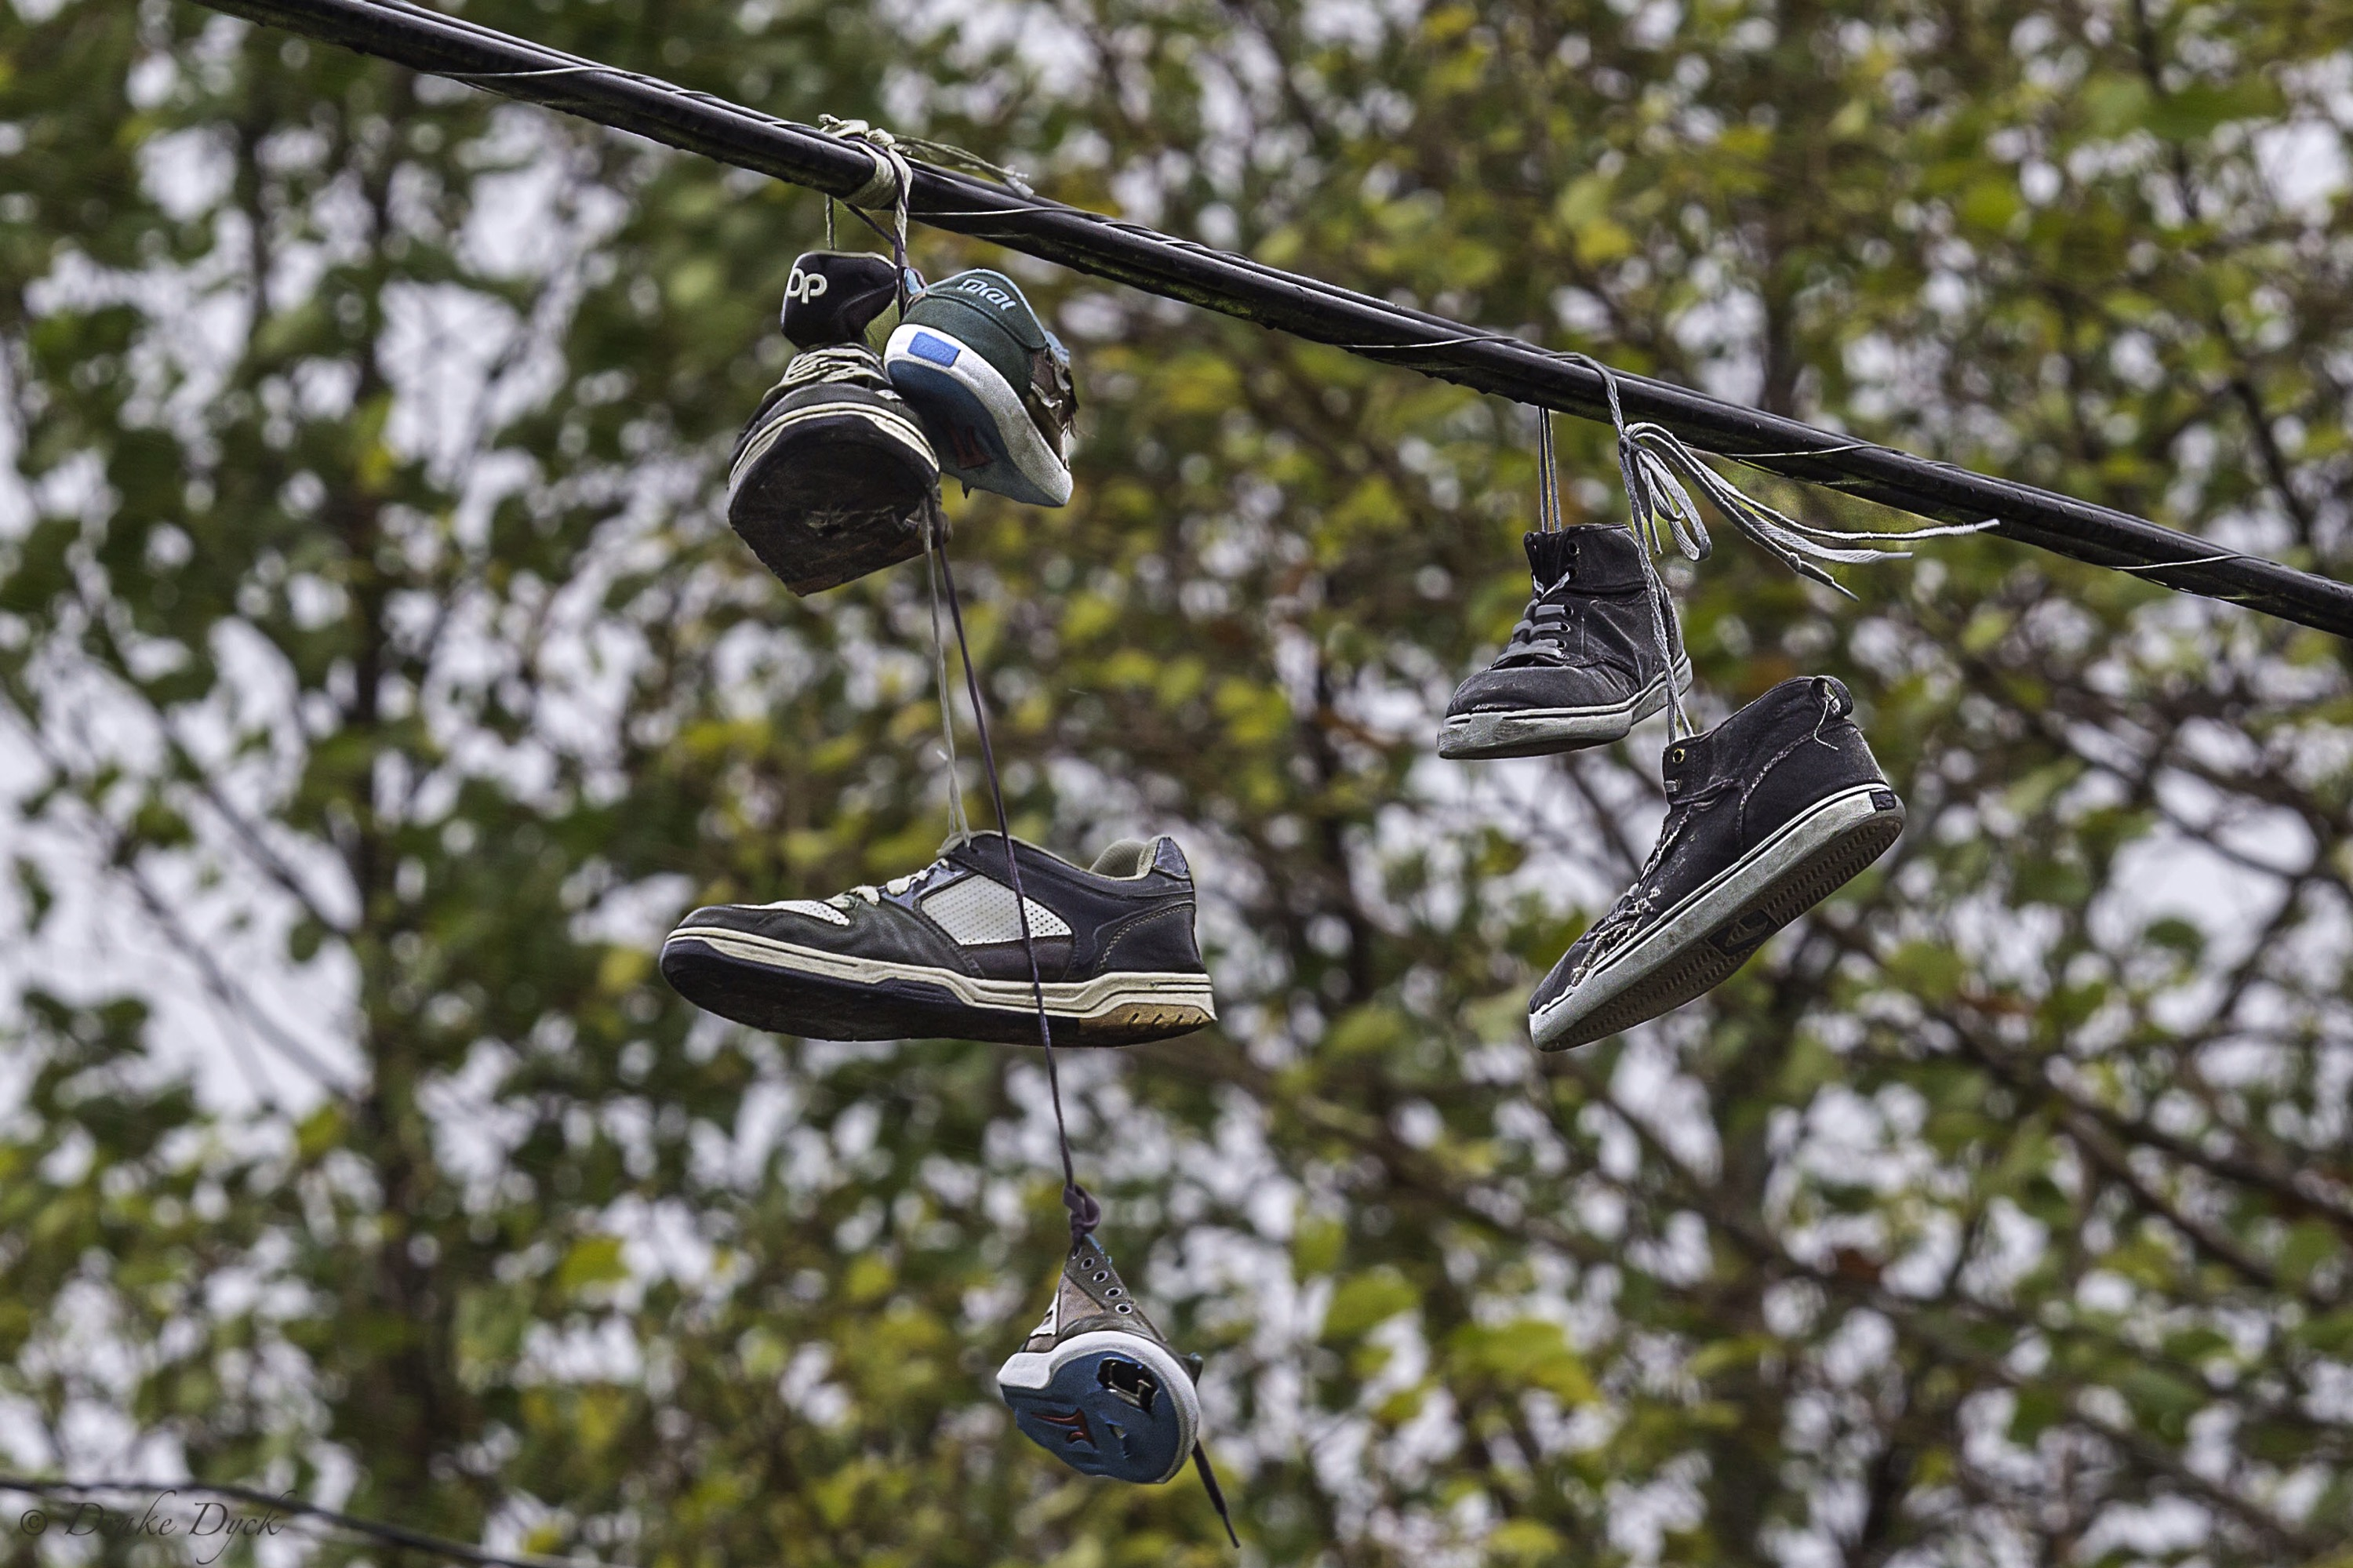 three pairs of shoes hanging from a line